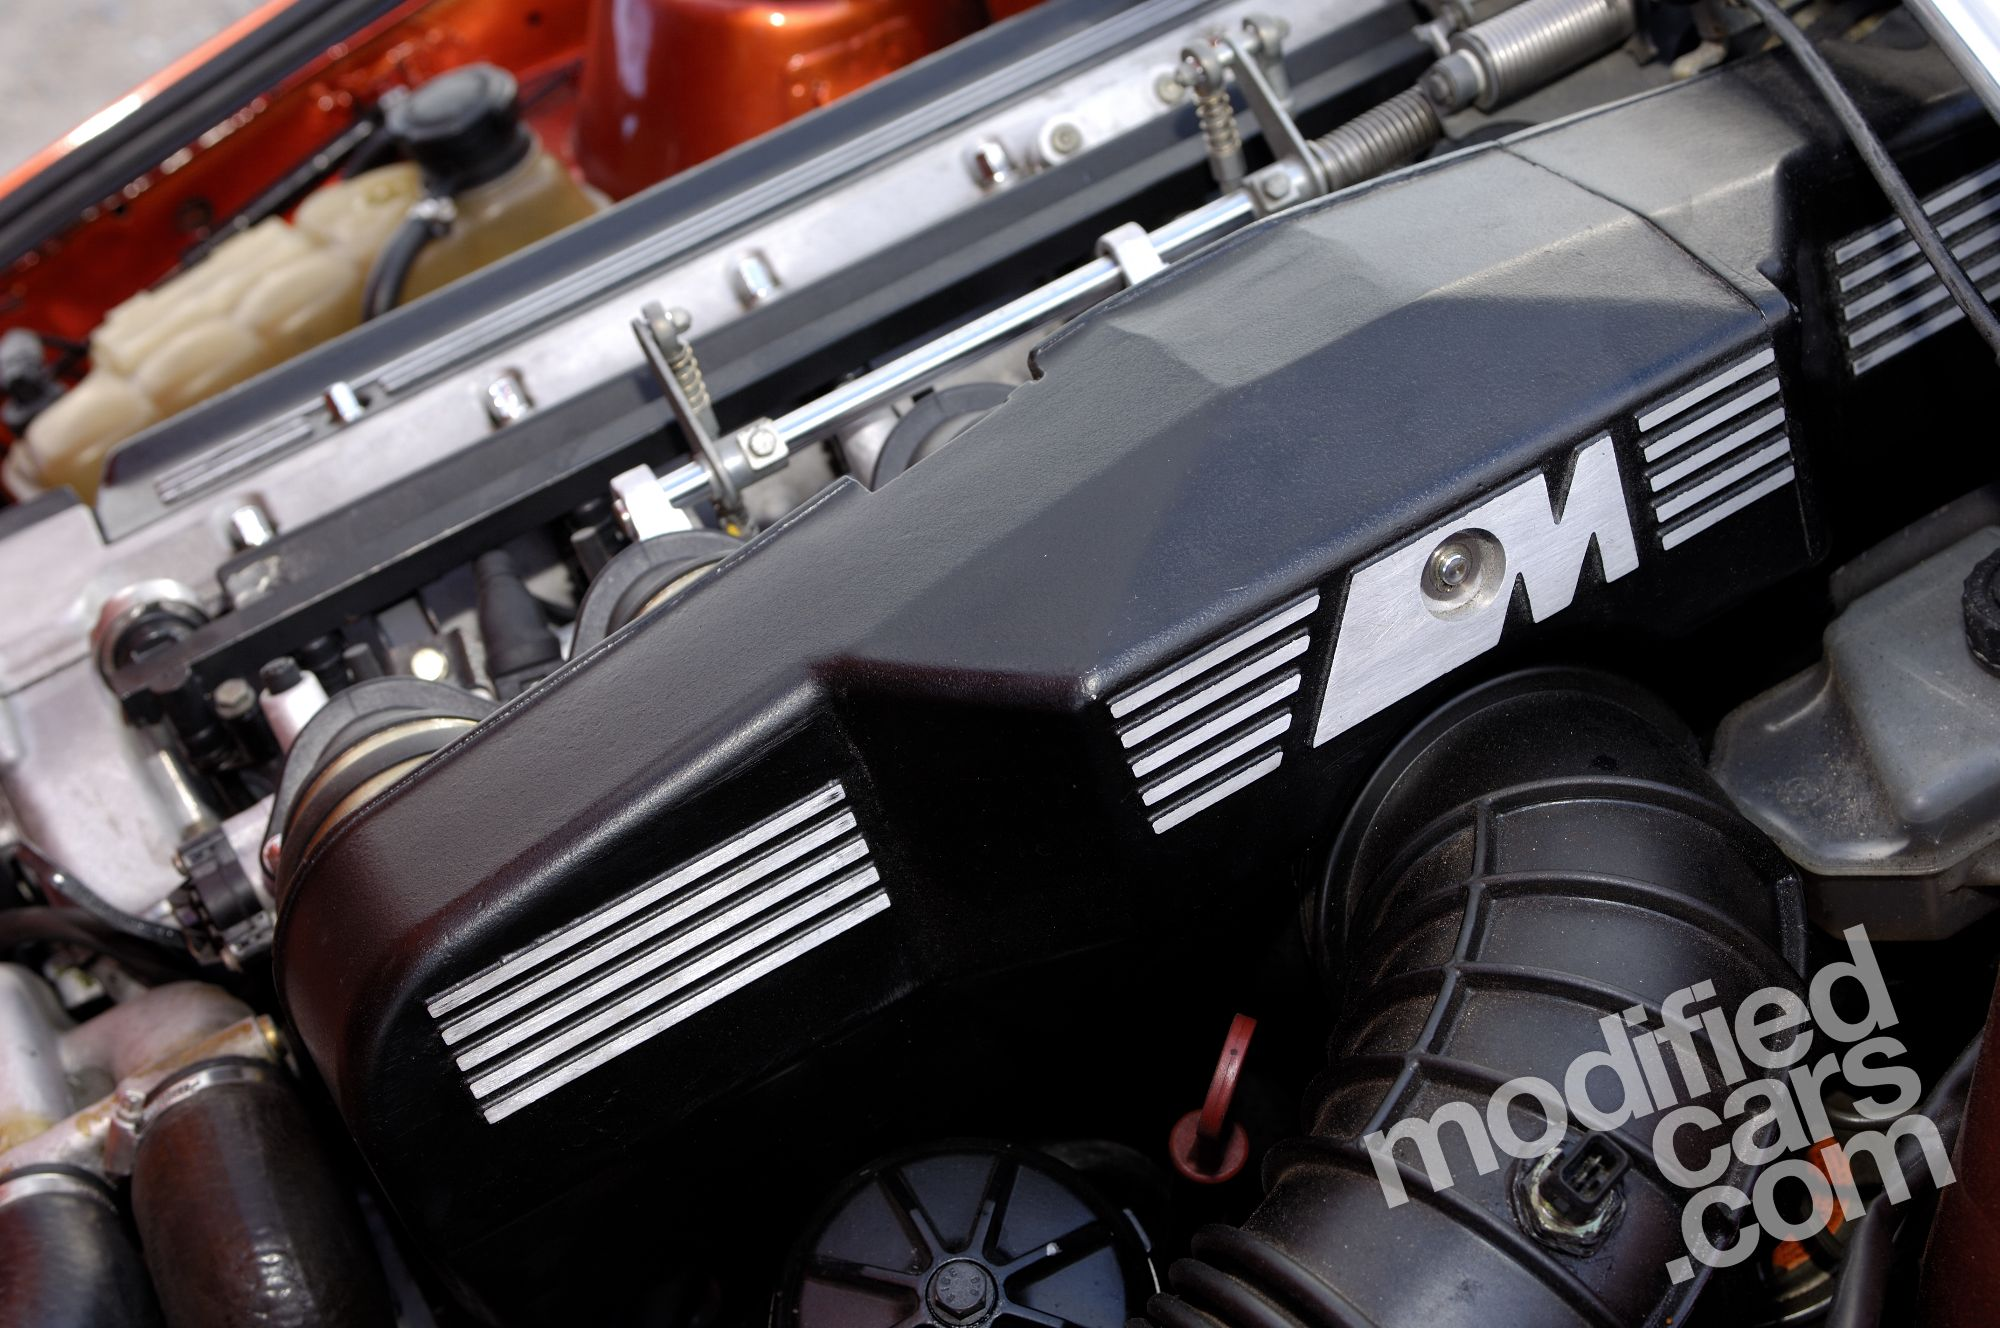 Bmw e30 m3 photo 1 from love story of a man and his m3 - Frank ocean bmw e30 ...